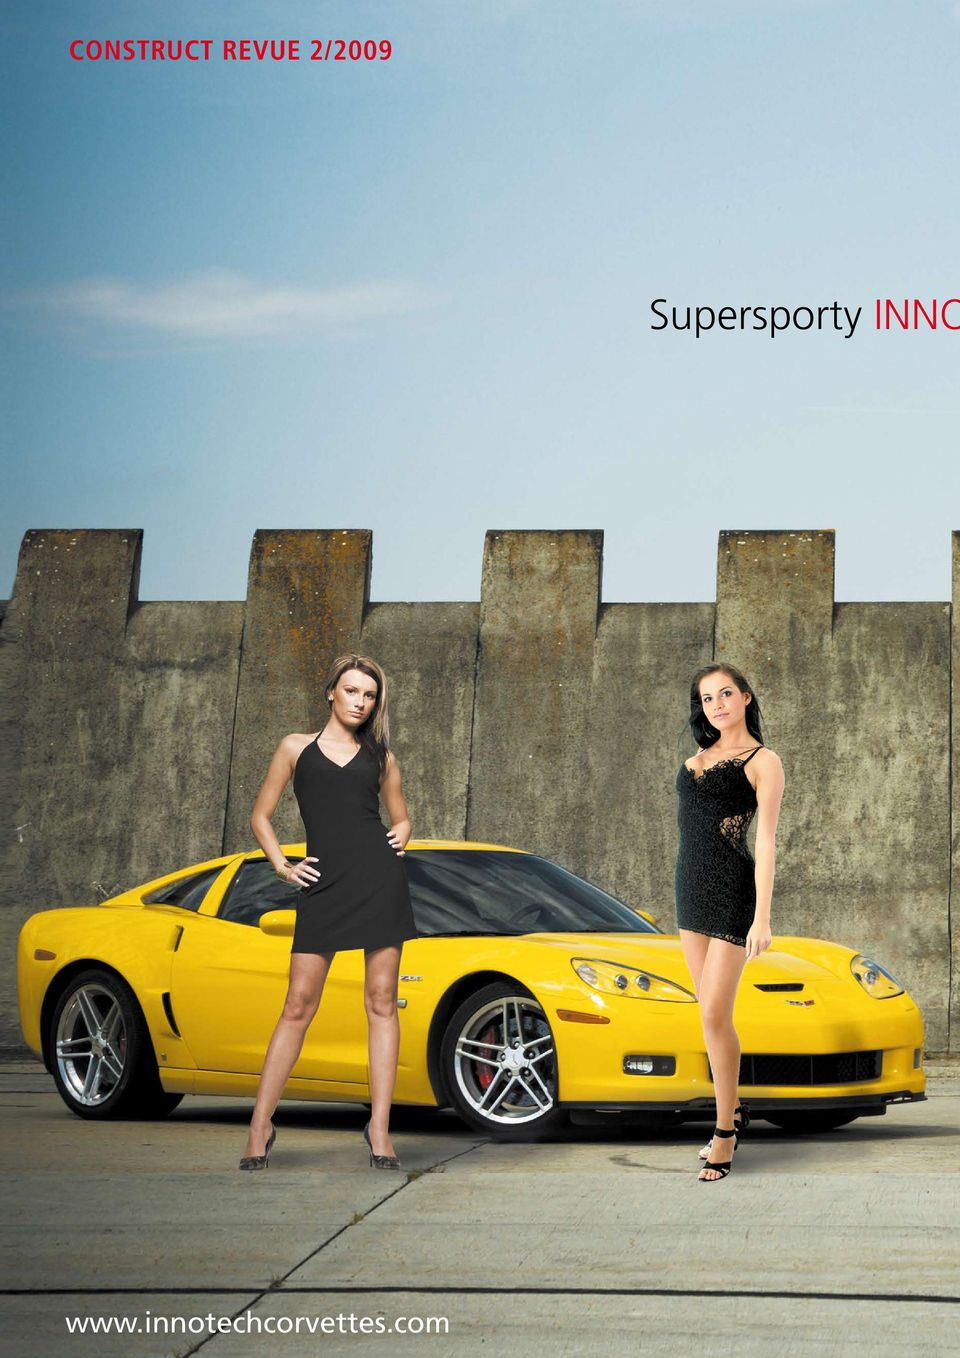 Supersporty INNO